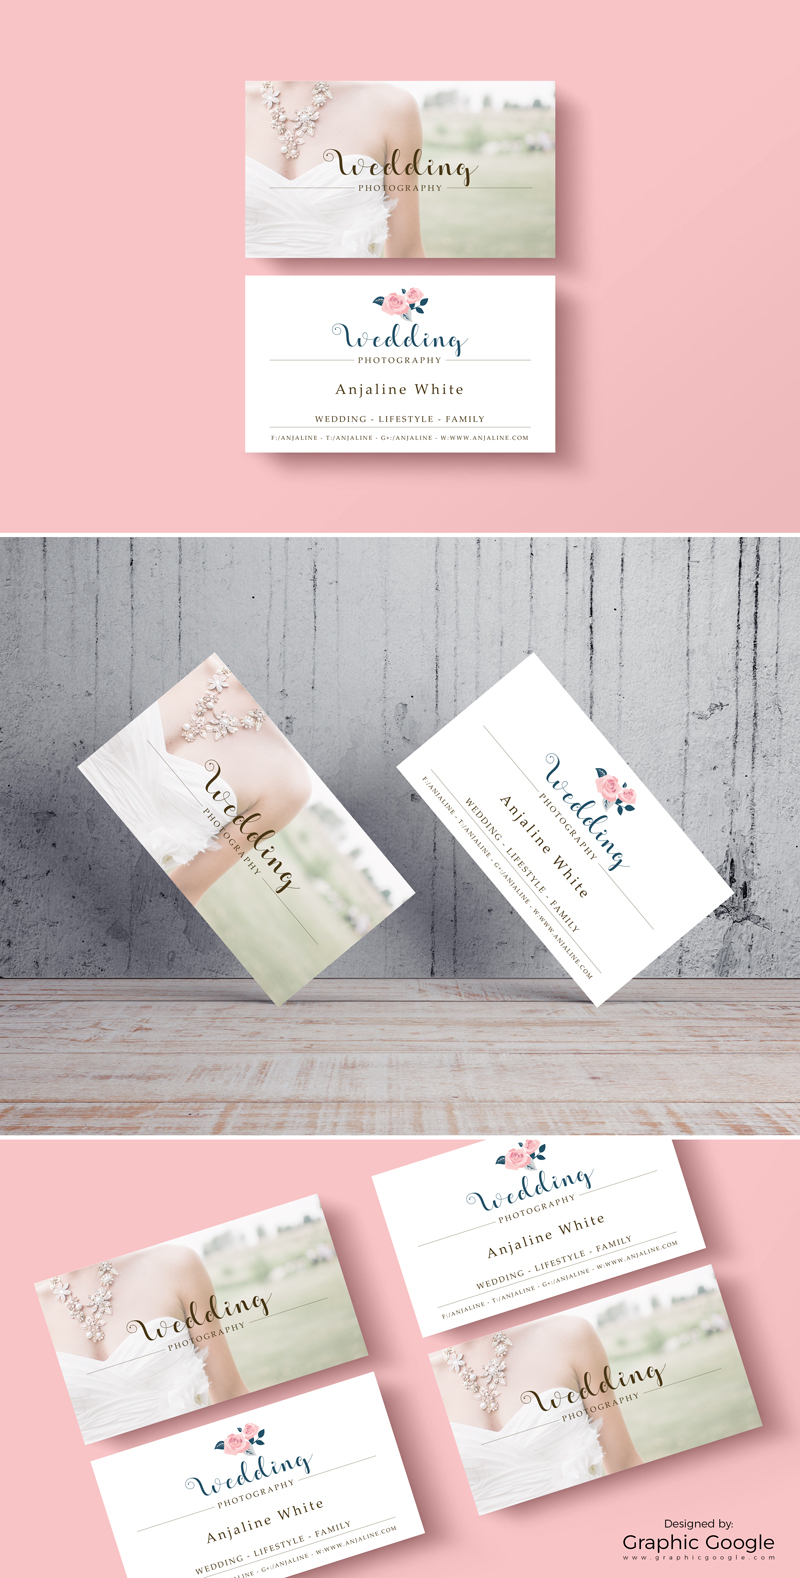 Free-Wedding-Photography-Business-Card-Template